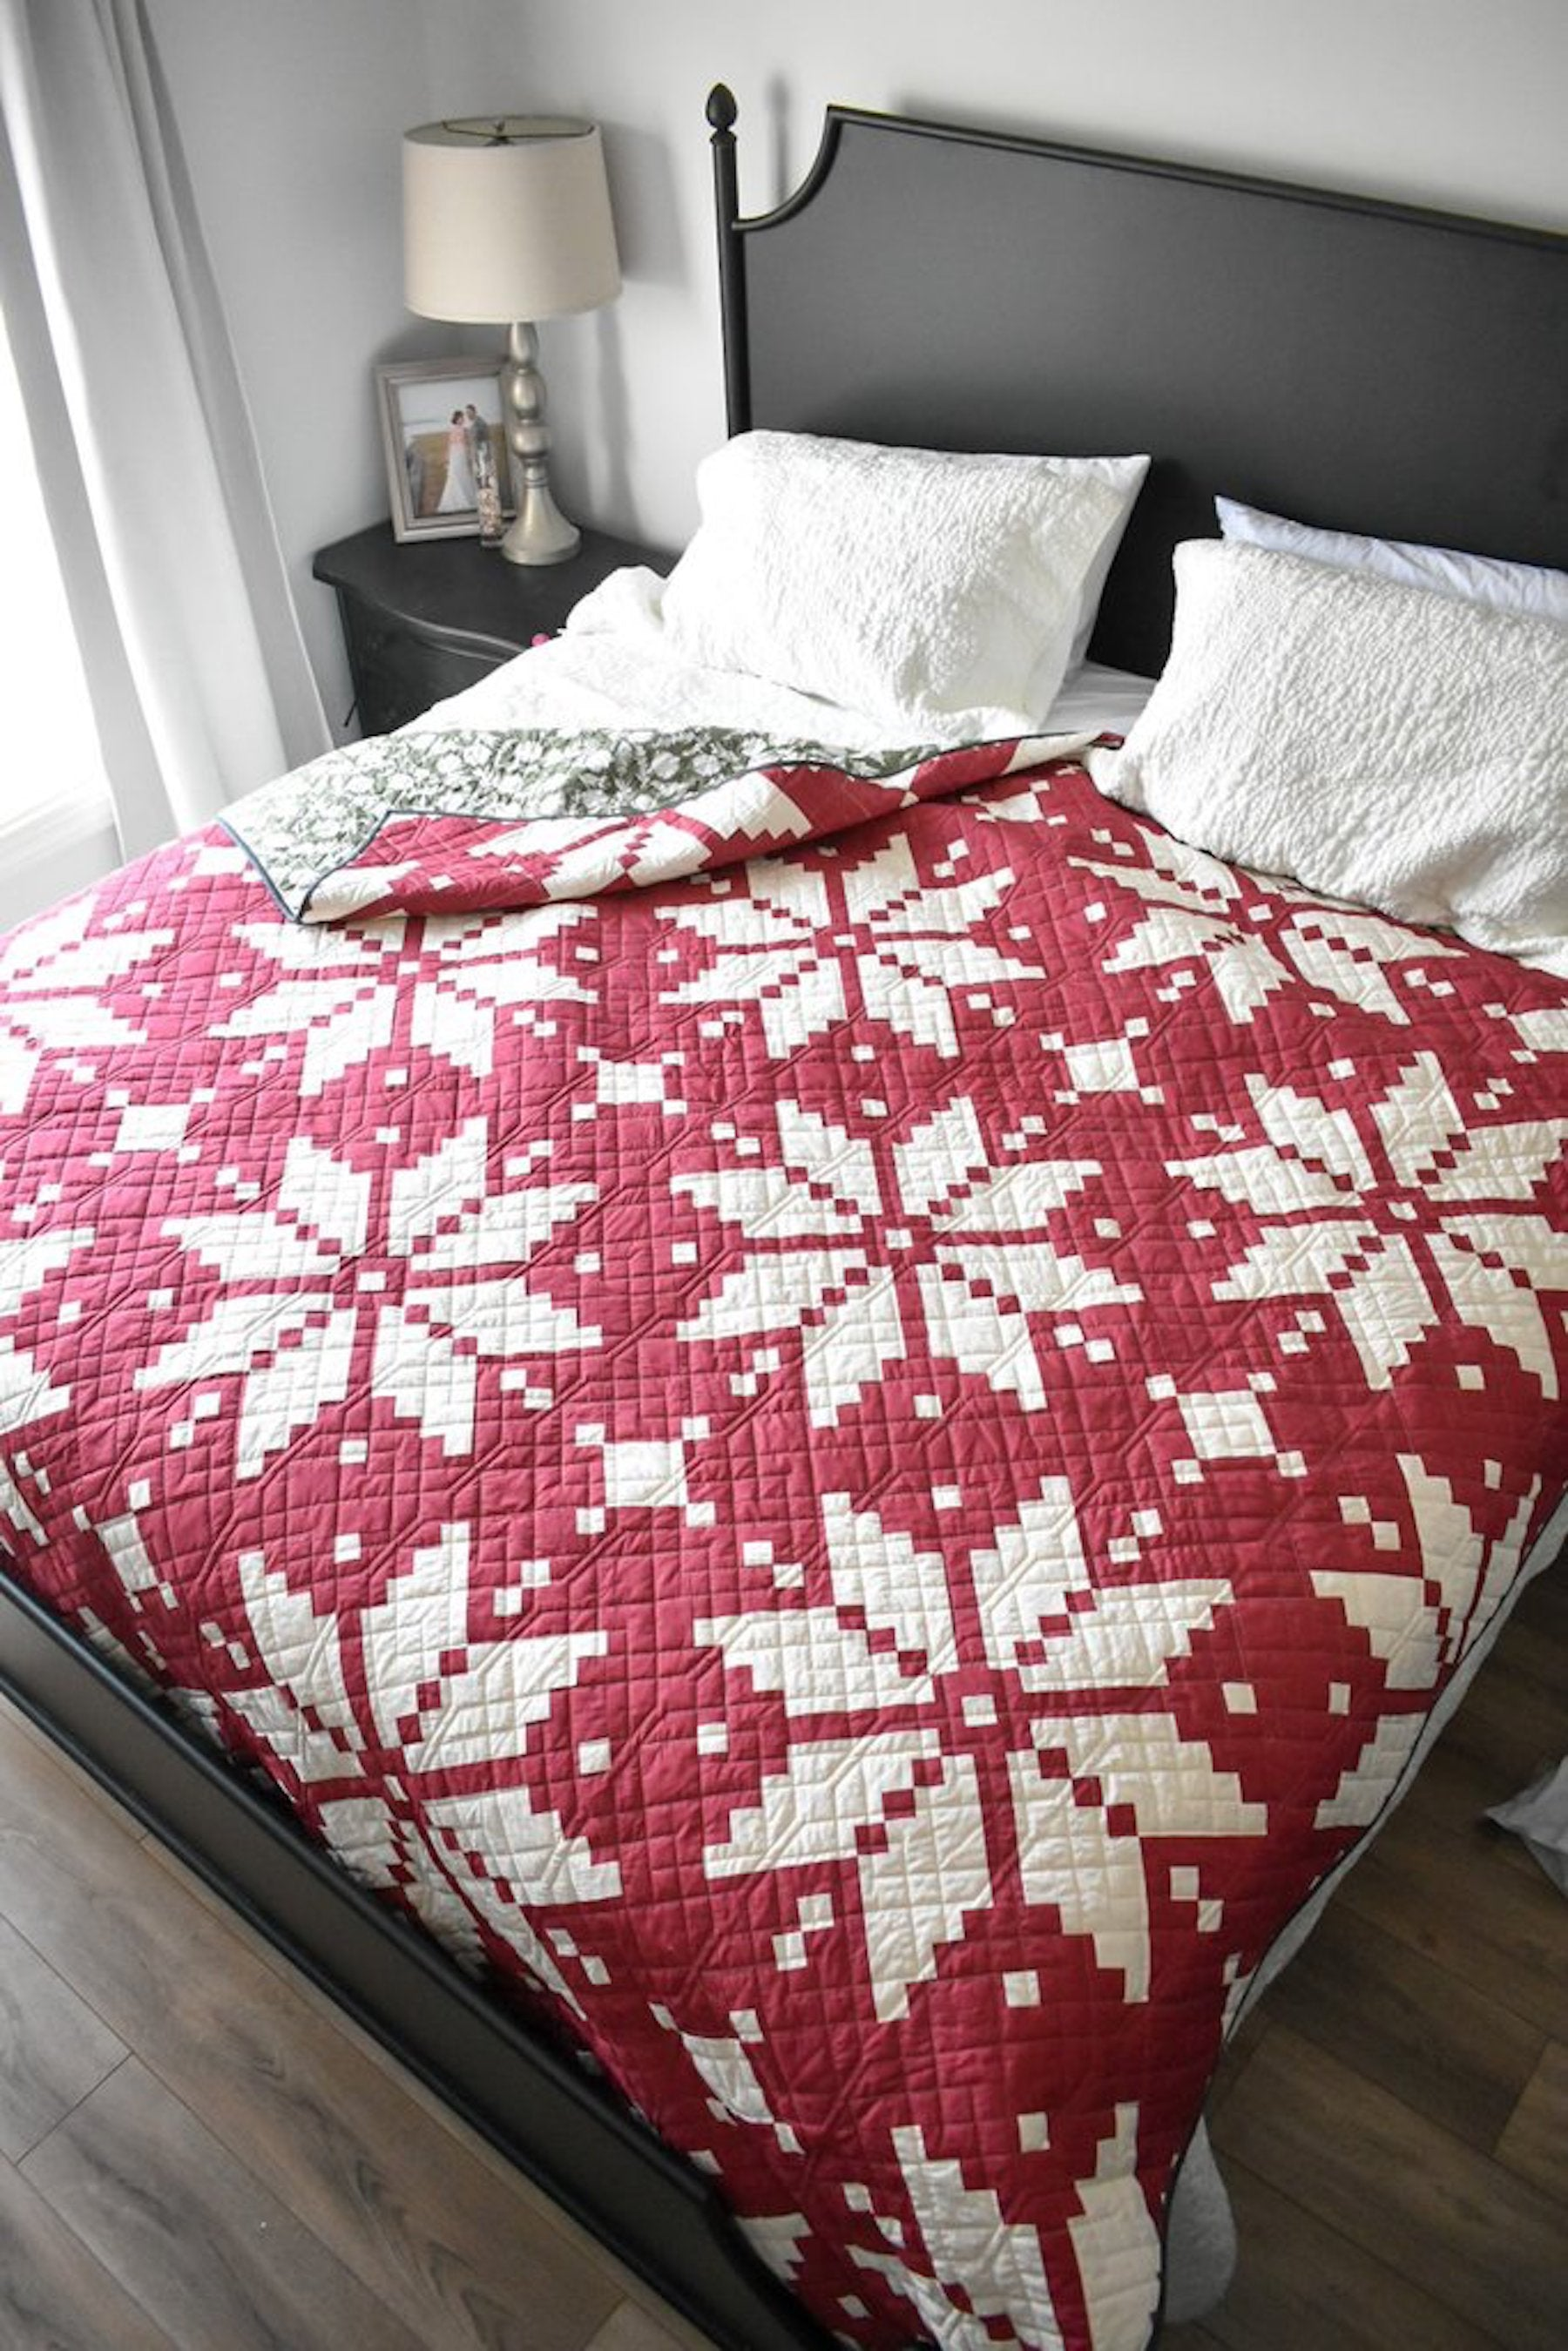 Knitted Star Quilt Pattern by Lo & Behold Stitchery - Sewfinity.com